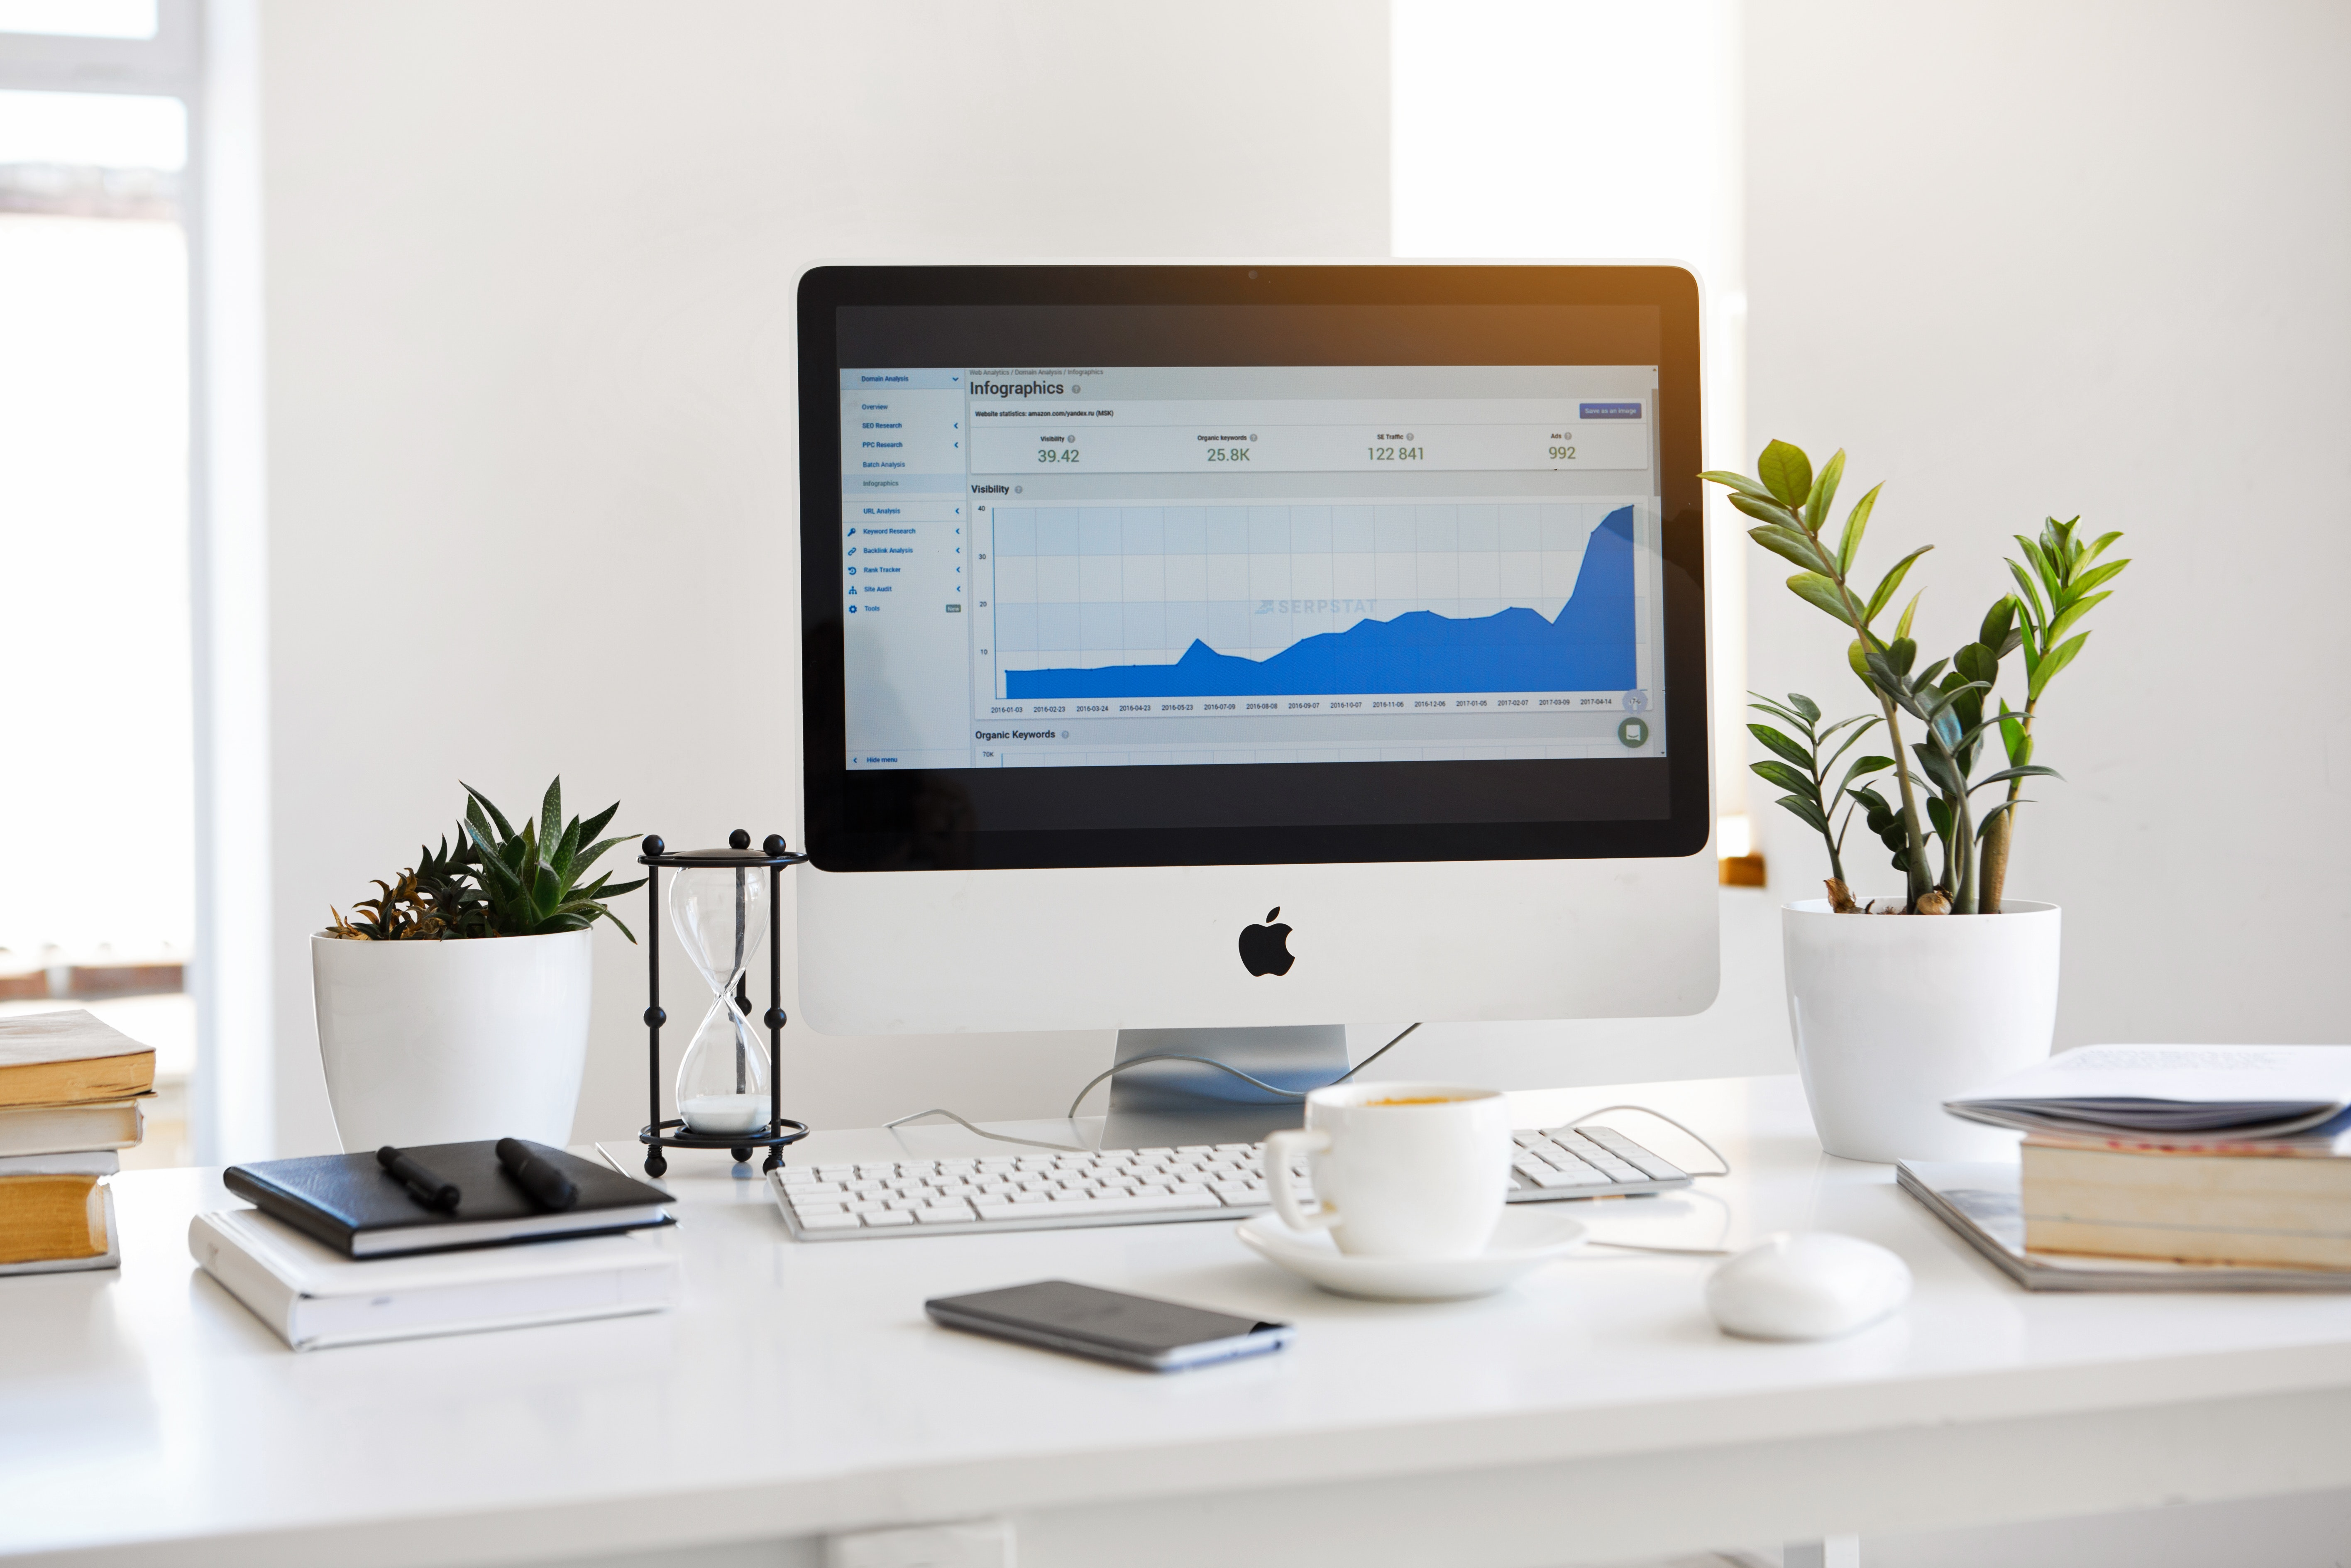 An in-depth review of the best desktop organizers available in 2019.